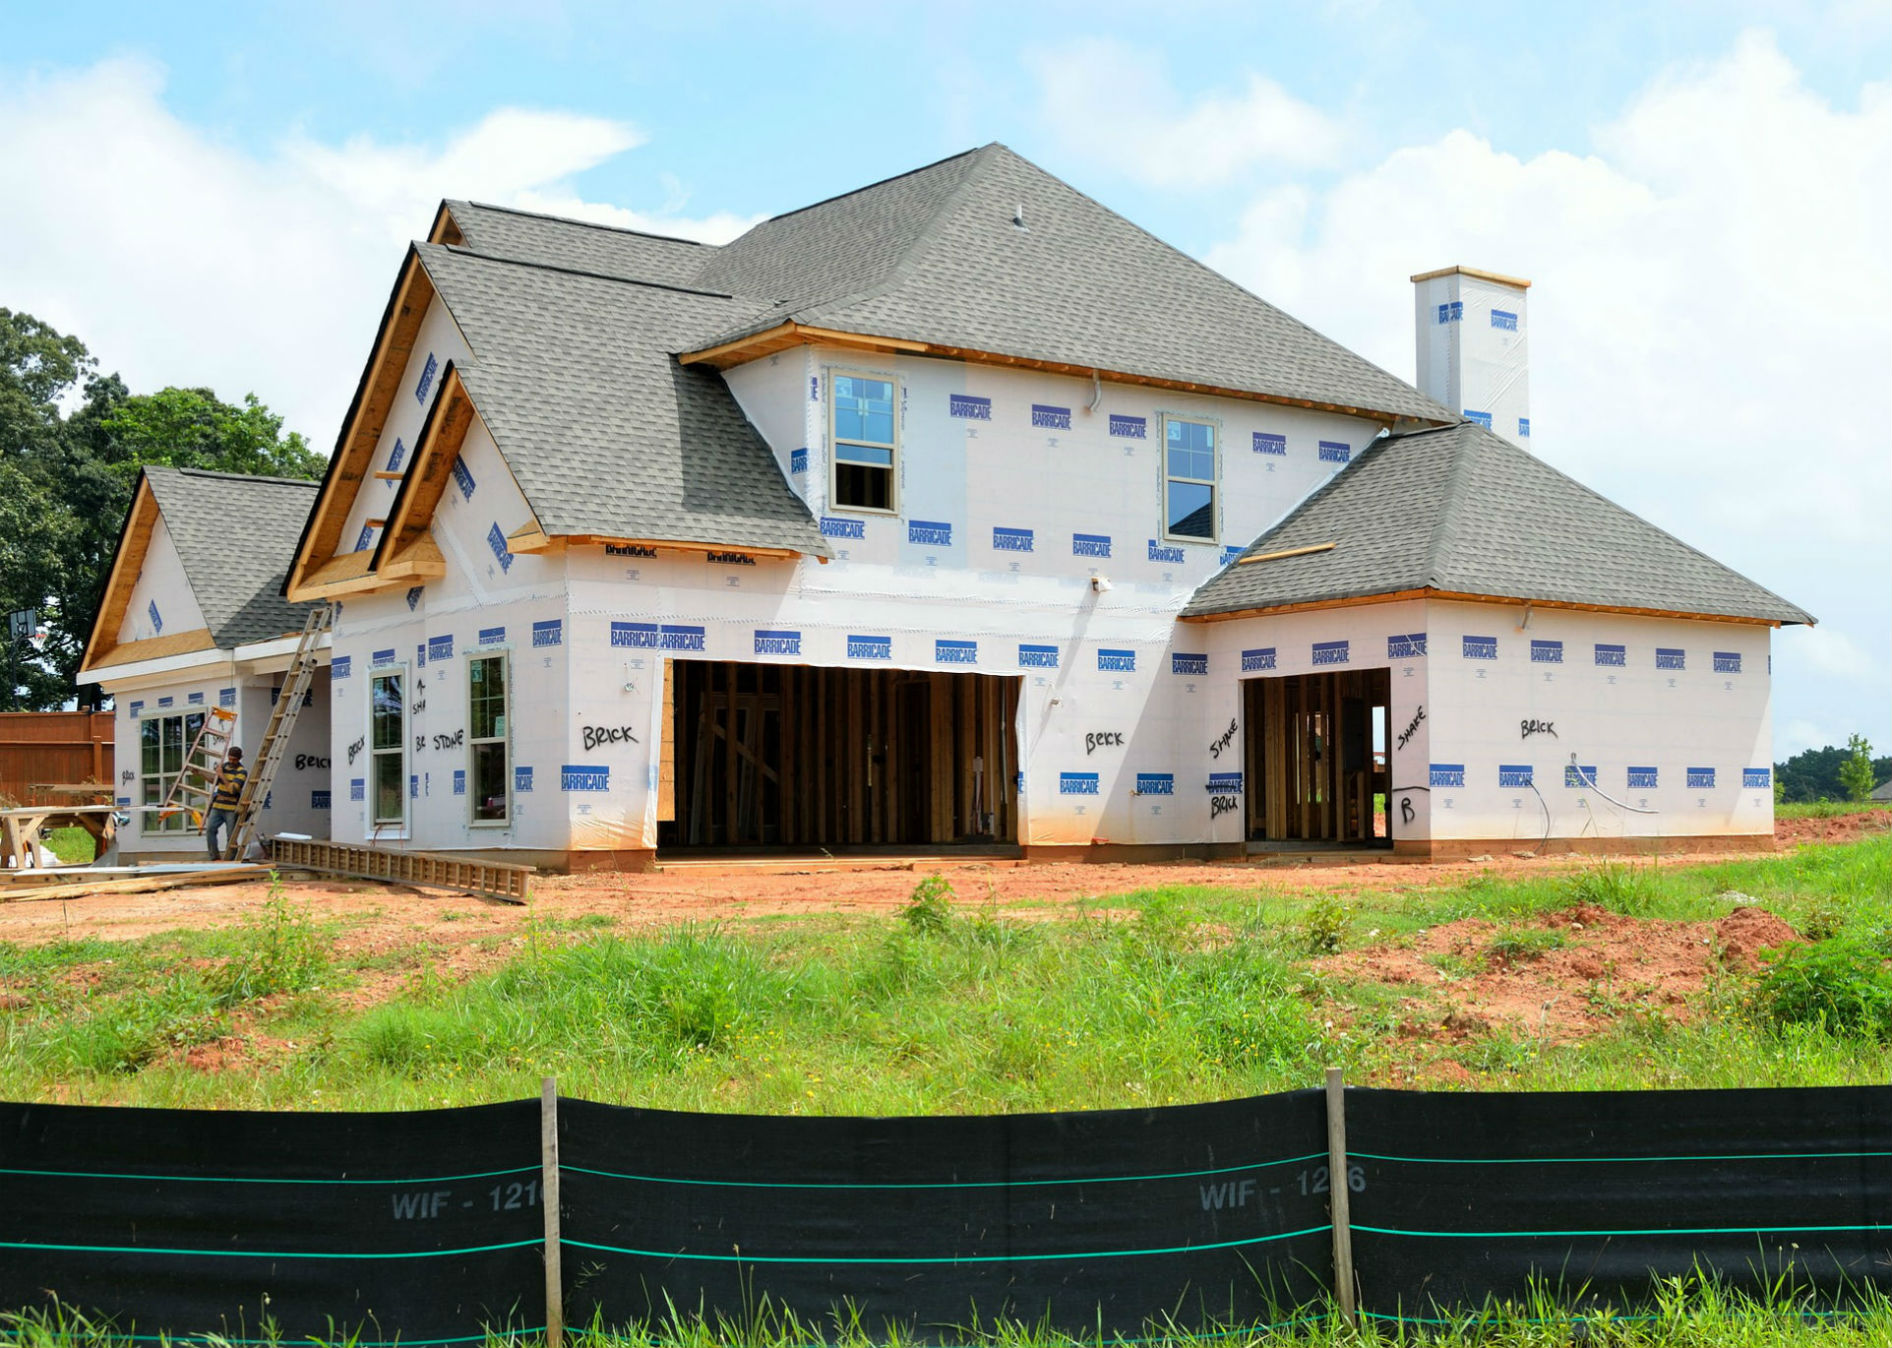 Home roofing contractor Maryland